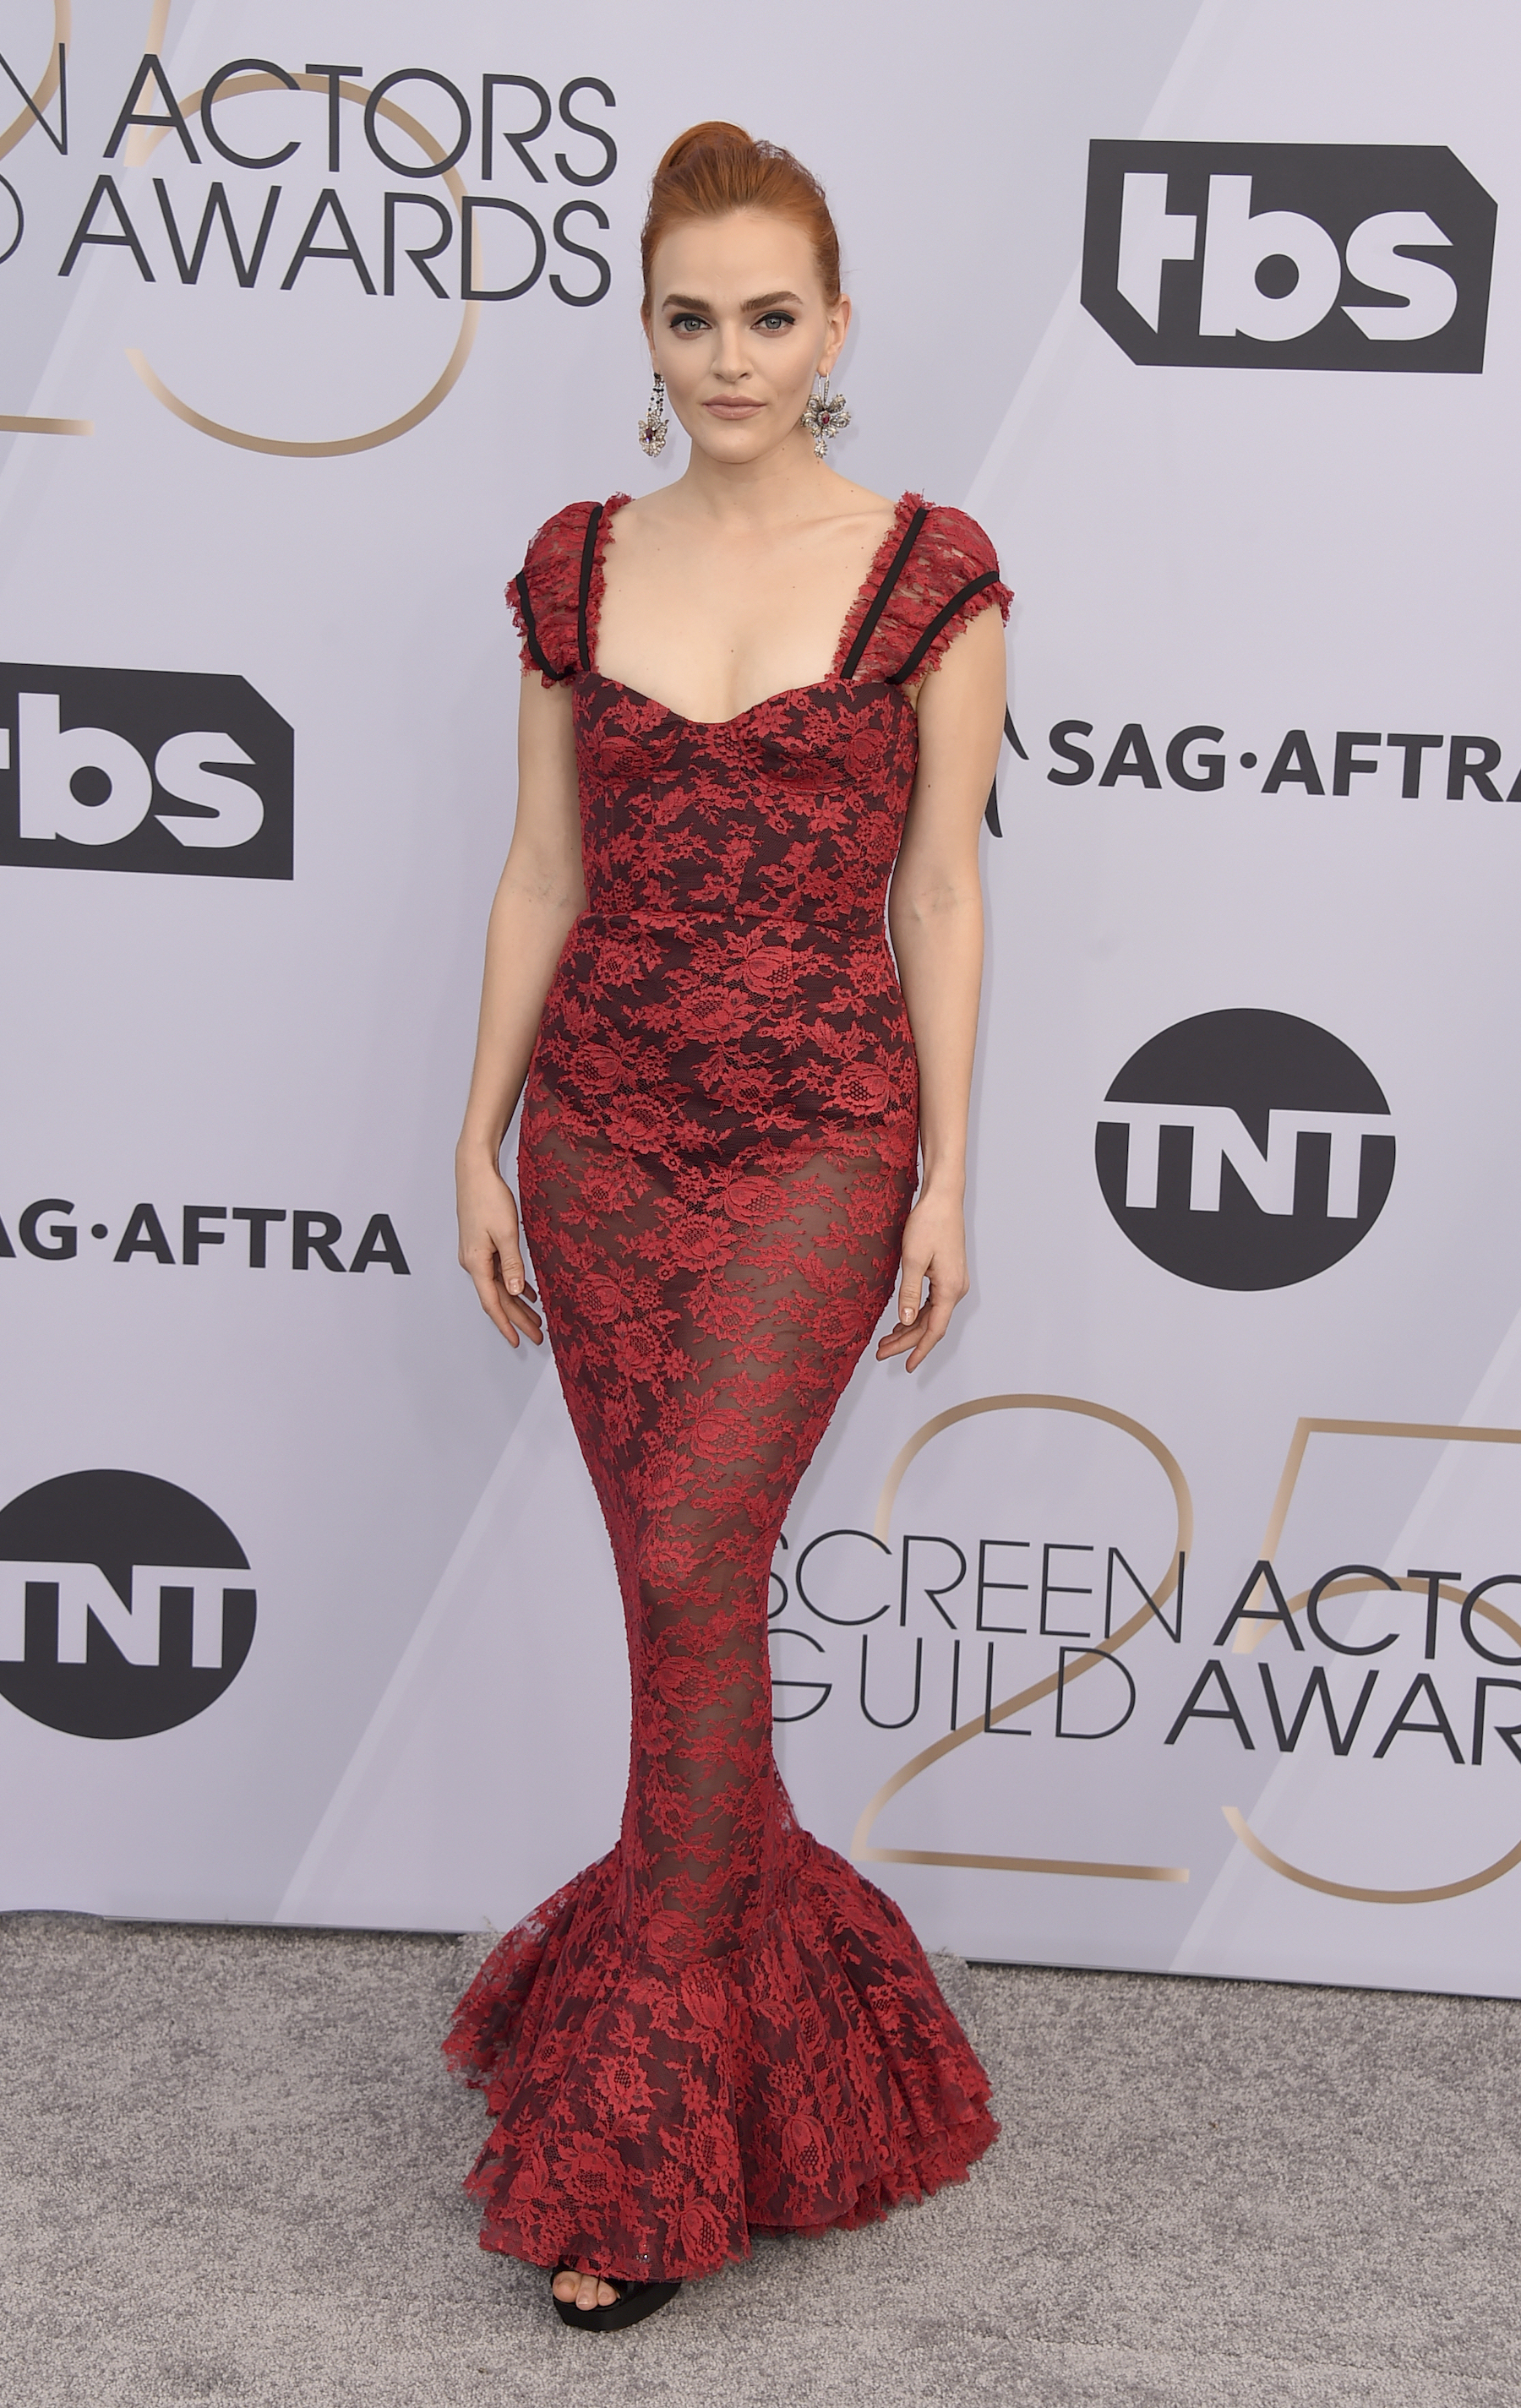 <div class='meta'><div class='origin-logo' data-origin='AP'></div><span class='caption-text' data-credit='Jordan Strauss/Invision/AP'>Madeline Brewer arrives at the 25th annual Screen Actors Guild Awards at the Shrine Auditorium & Expo Hall on Sunday, Jan. 27, 2019, in Los Angeles.</span></div>